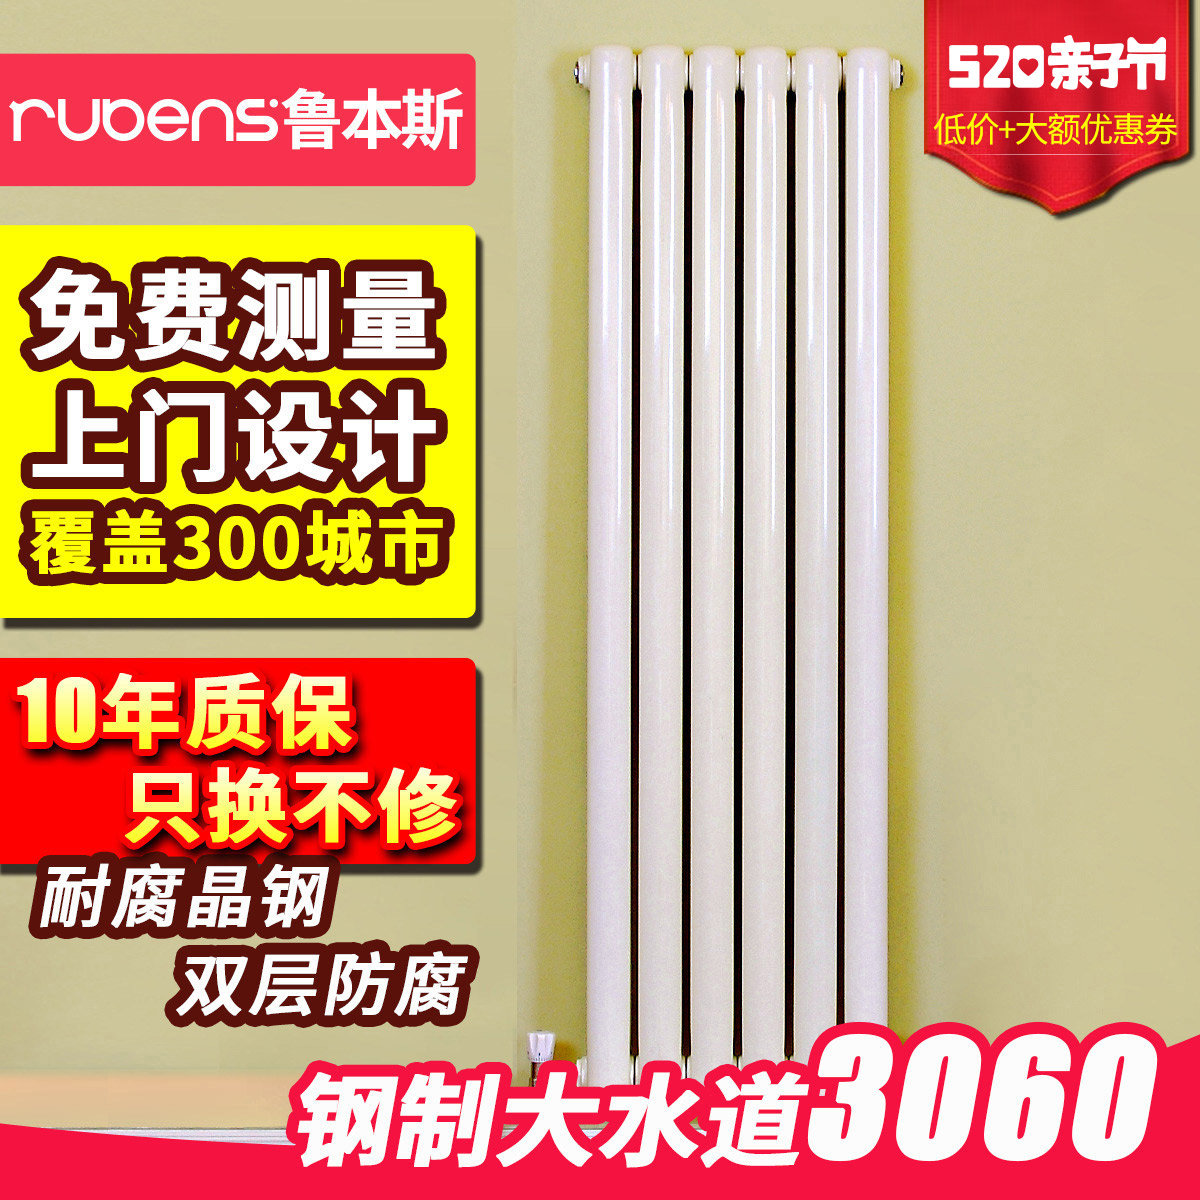 Rubens Steel Heating Plate Household Water Heating Wall-mounted Decorative Heat Exchanger Radiator Customized Superheater